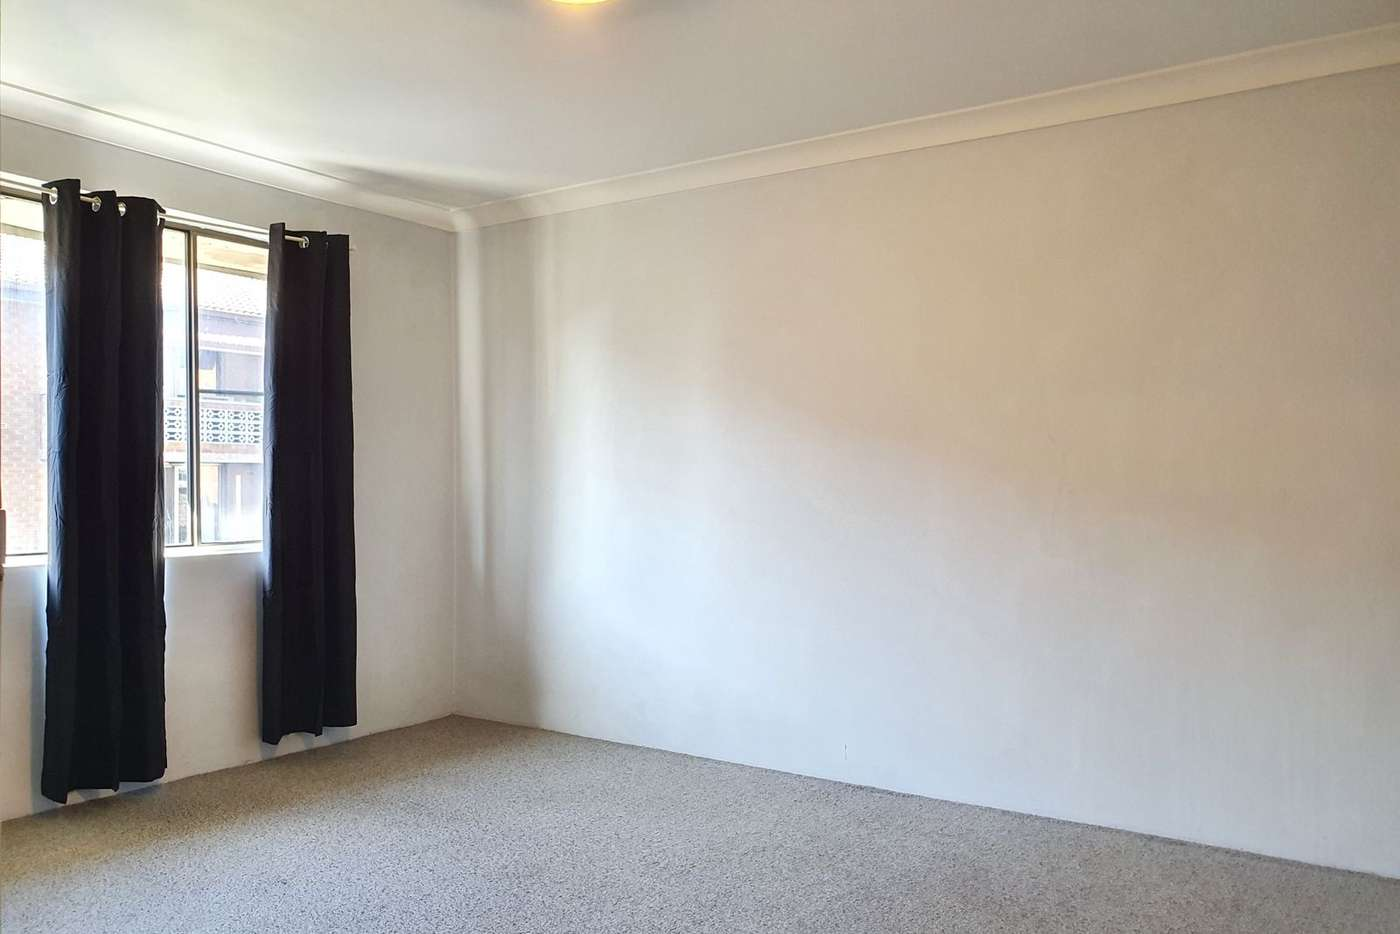 Sixth view of Homely unit listing, 4/9-11 Doodson Avenue, Lidcombe NSW 2141